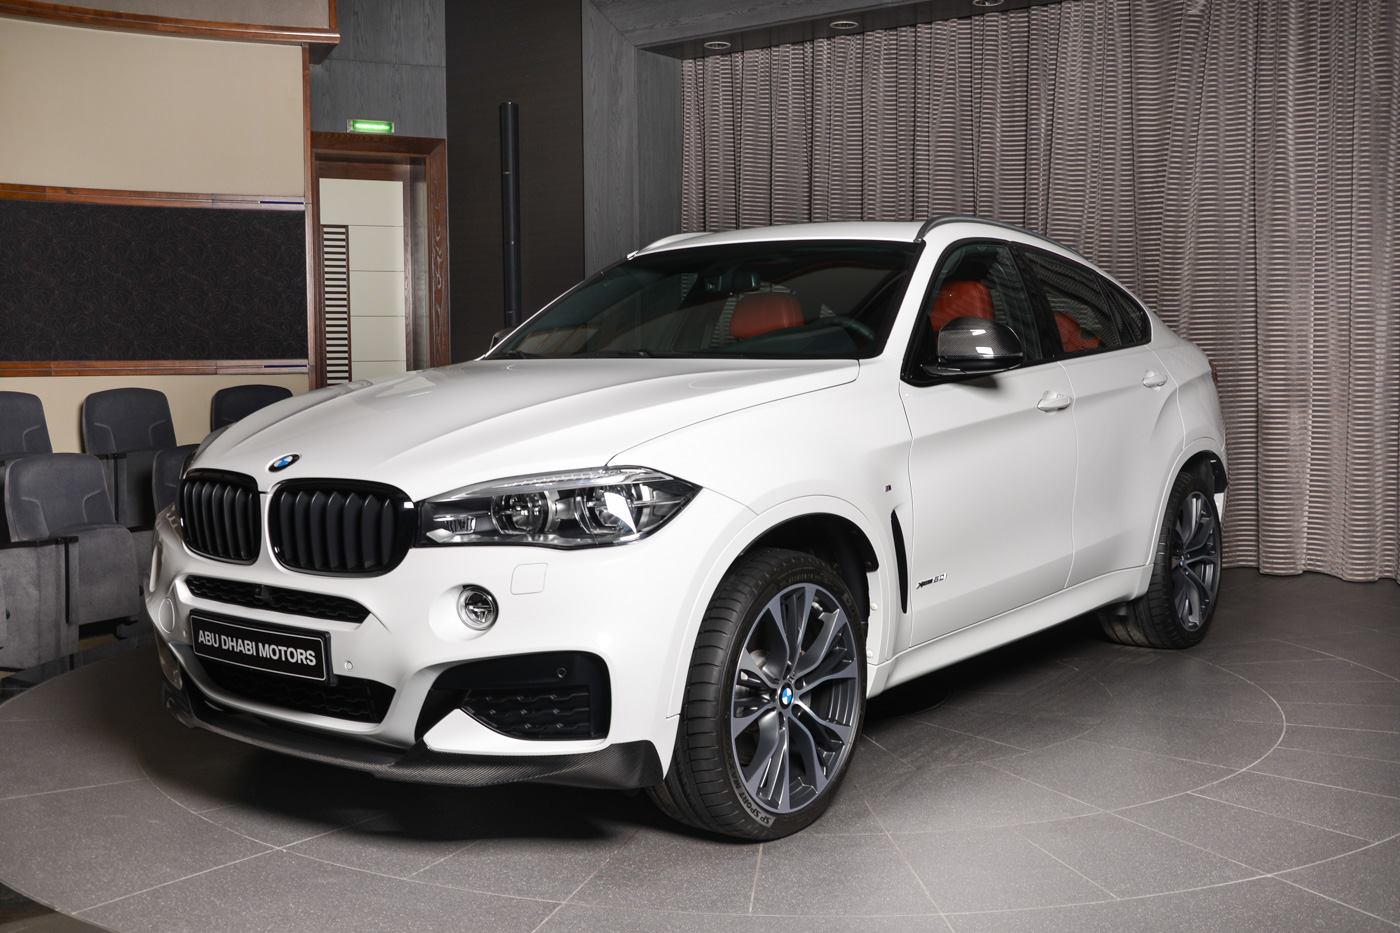 bmw x6 xdrive50i m performance with ac schnitzer flexes its muscles in abu dhabi bmw car tuning. Black Bedroom Furniture Sets. Home Design Ideas